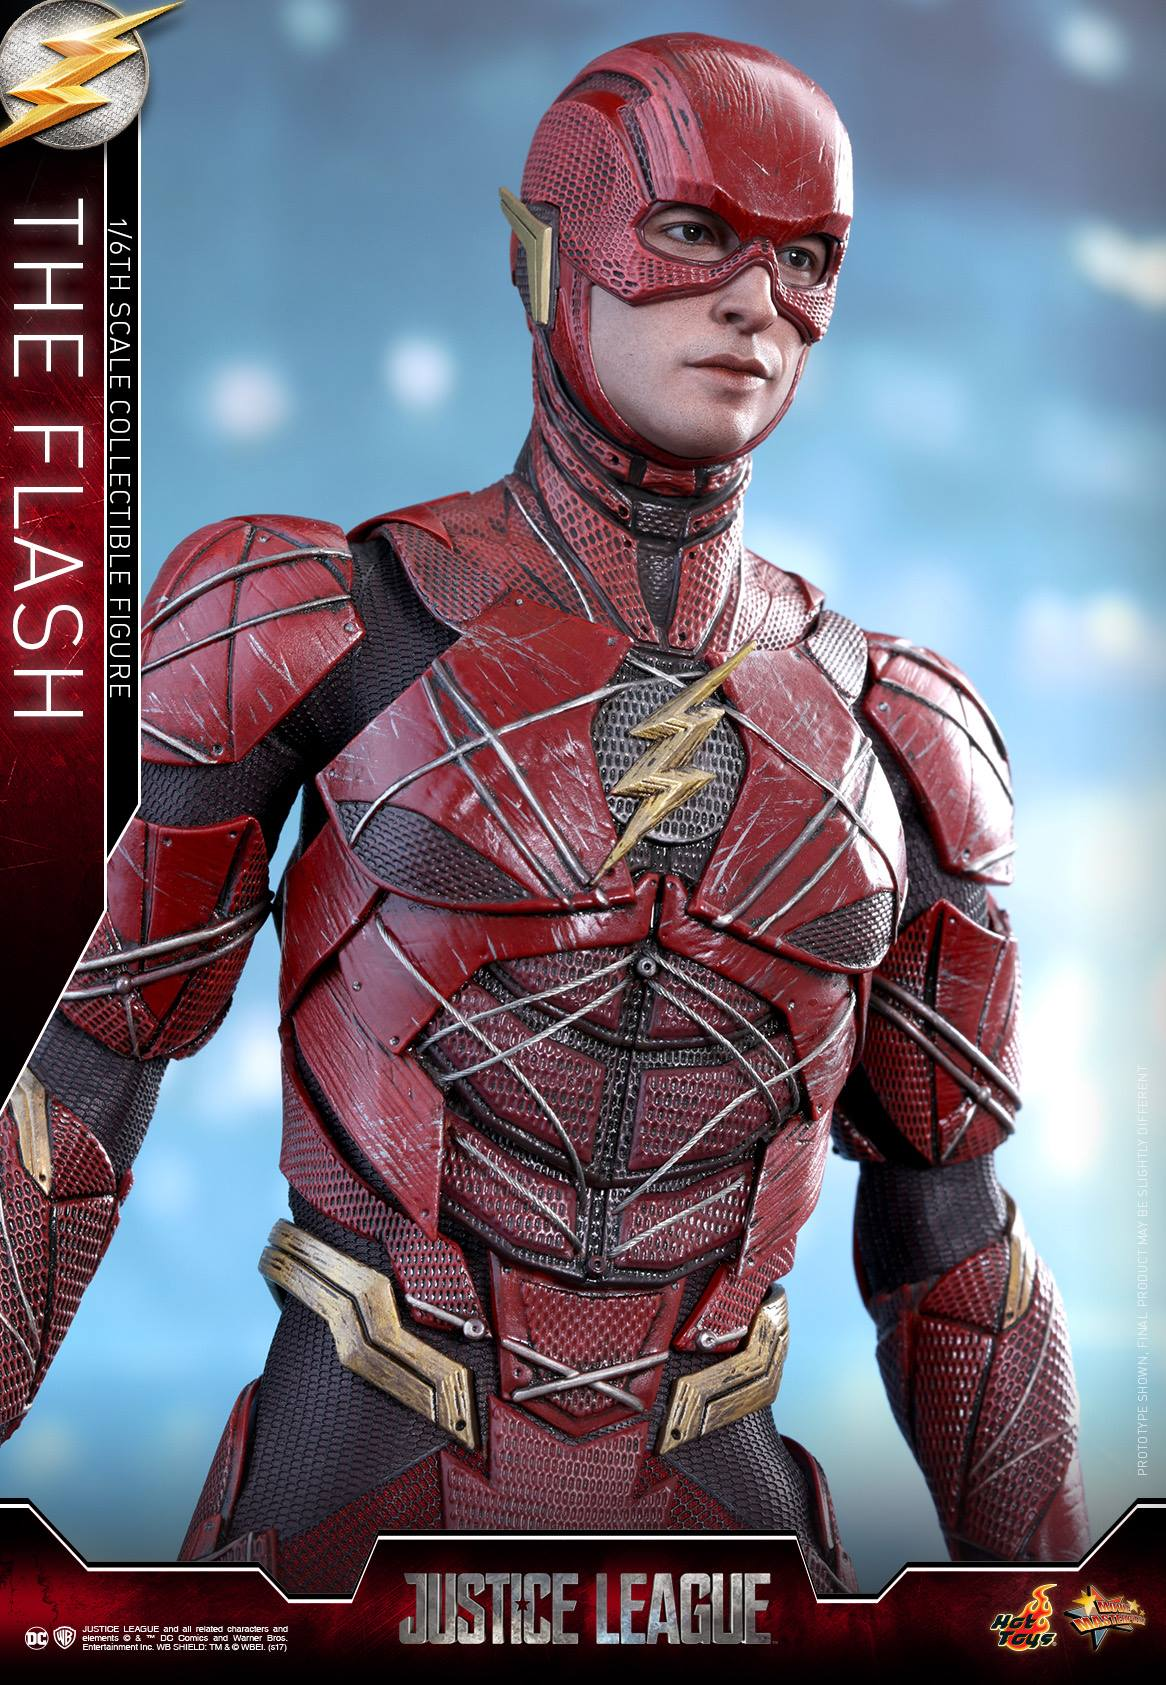 Hot-Toys-Justice-League-The-Flash-004